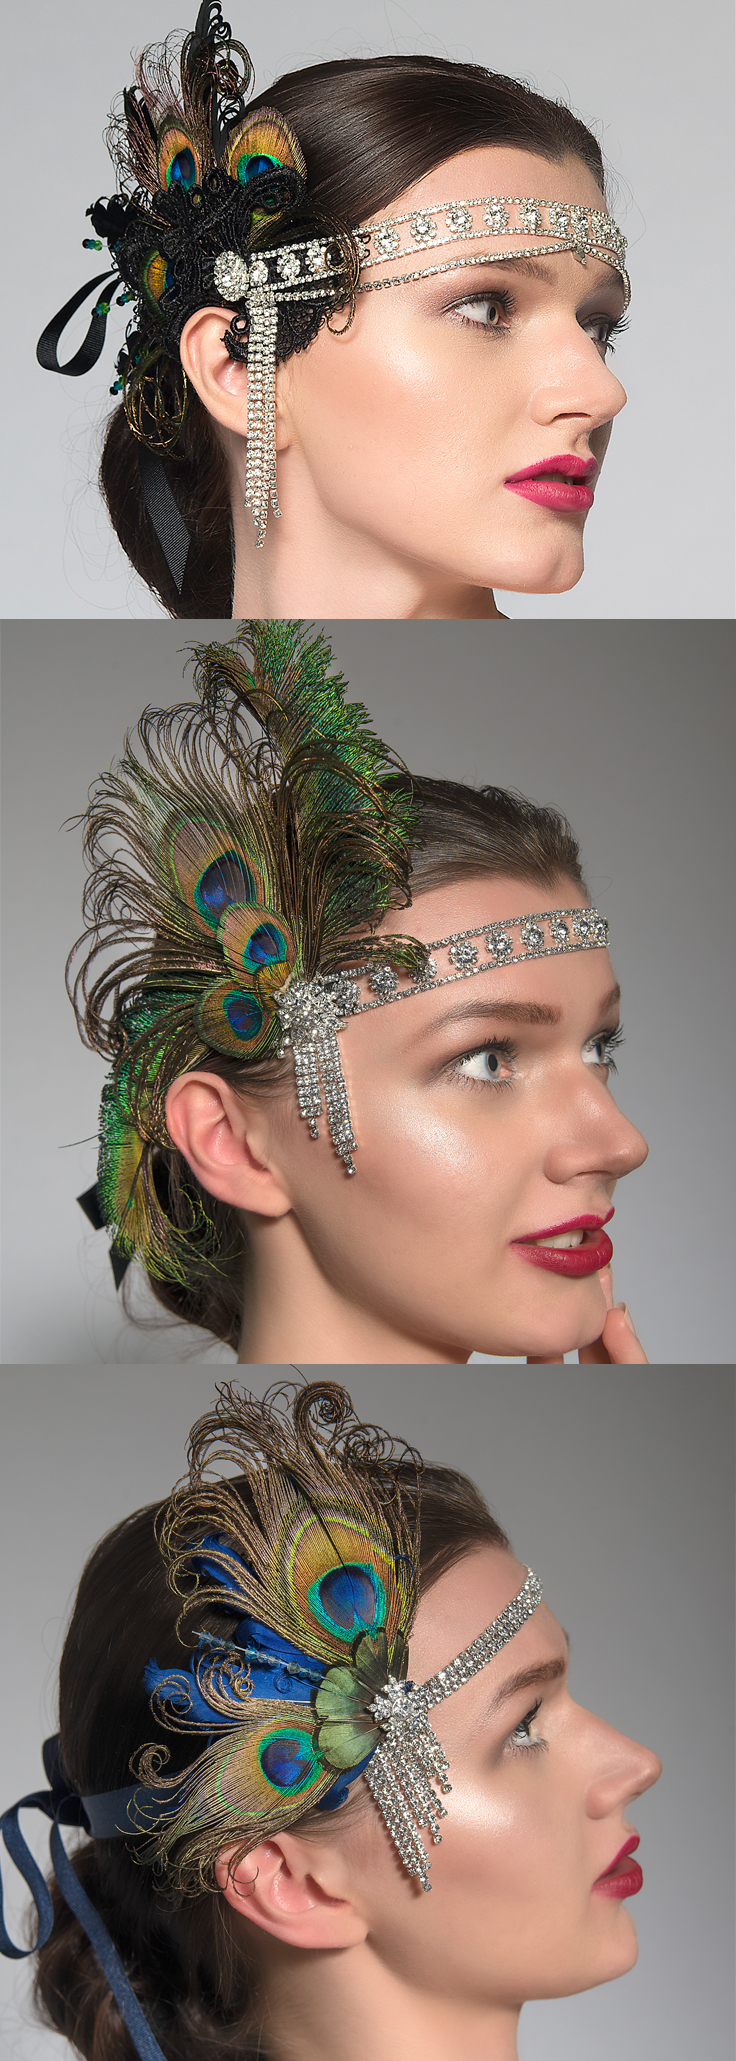 Headbands for a 1920s Party, Flappergirl Headbands with Peacock Feathers and Crystals. Winter Wedding Accessories. Hair accessories for 1920s party. Fashion for 1920s party. Flapper Girl accessories 2020. Flapper Headbands 2020.